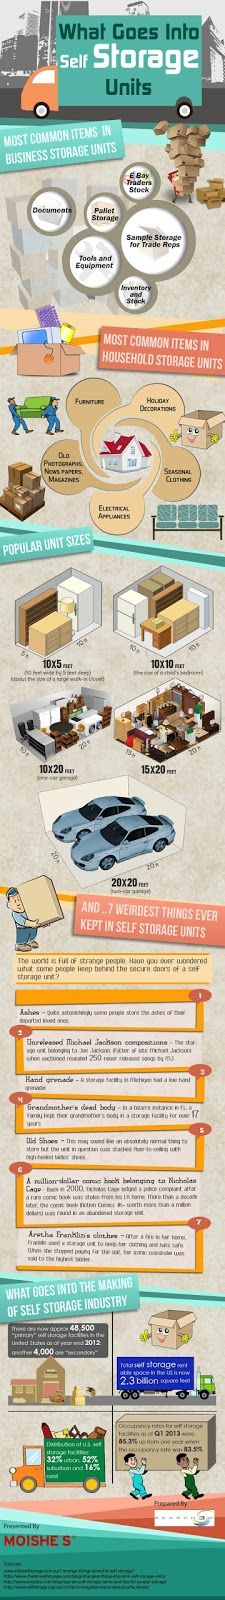 Among approx 59,500 self storage facilities (as of Q4-2012), about 48,500 were in the U.S alone. Here's an infographic that gives an insight into the kind of things that are kept in self storage units along with the weirdest things ever found there.